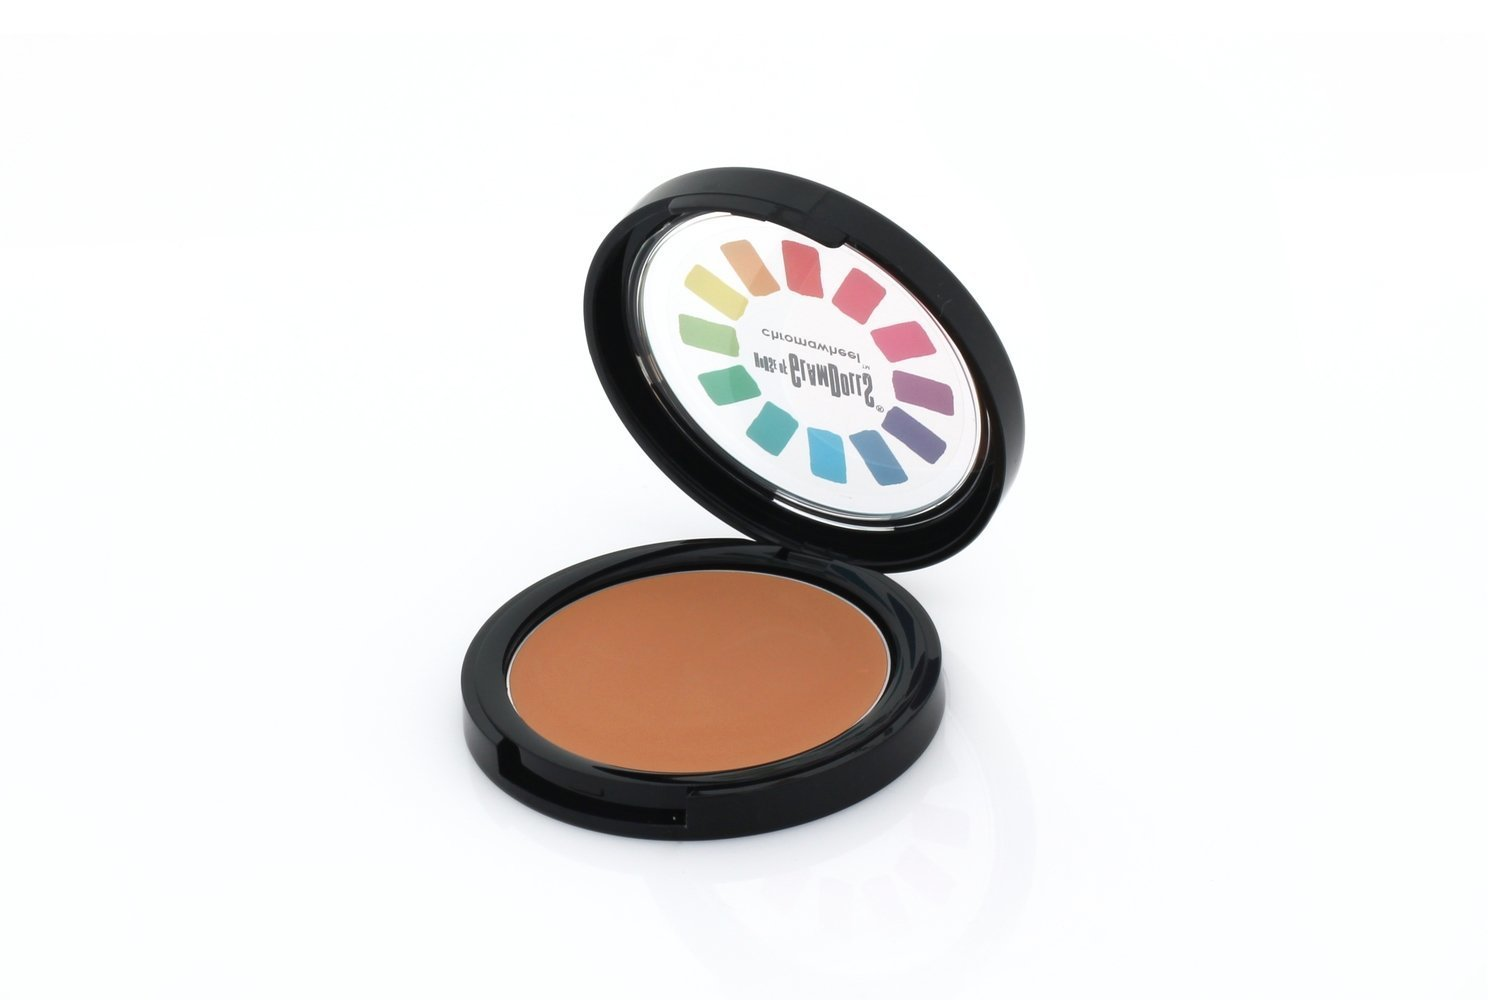 Retouch Y3 - buildable cream camouflage and retouching concealer